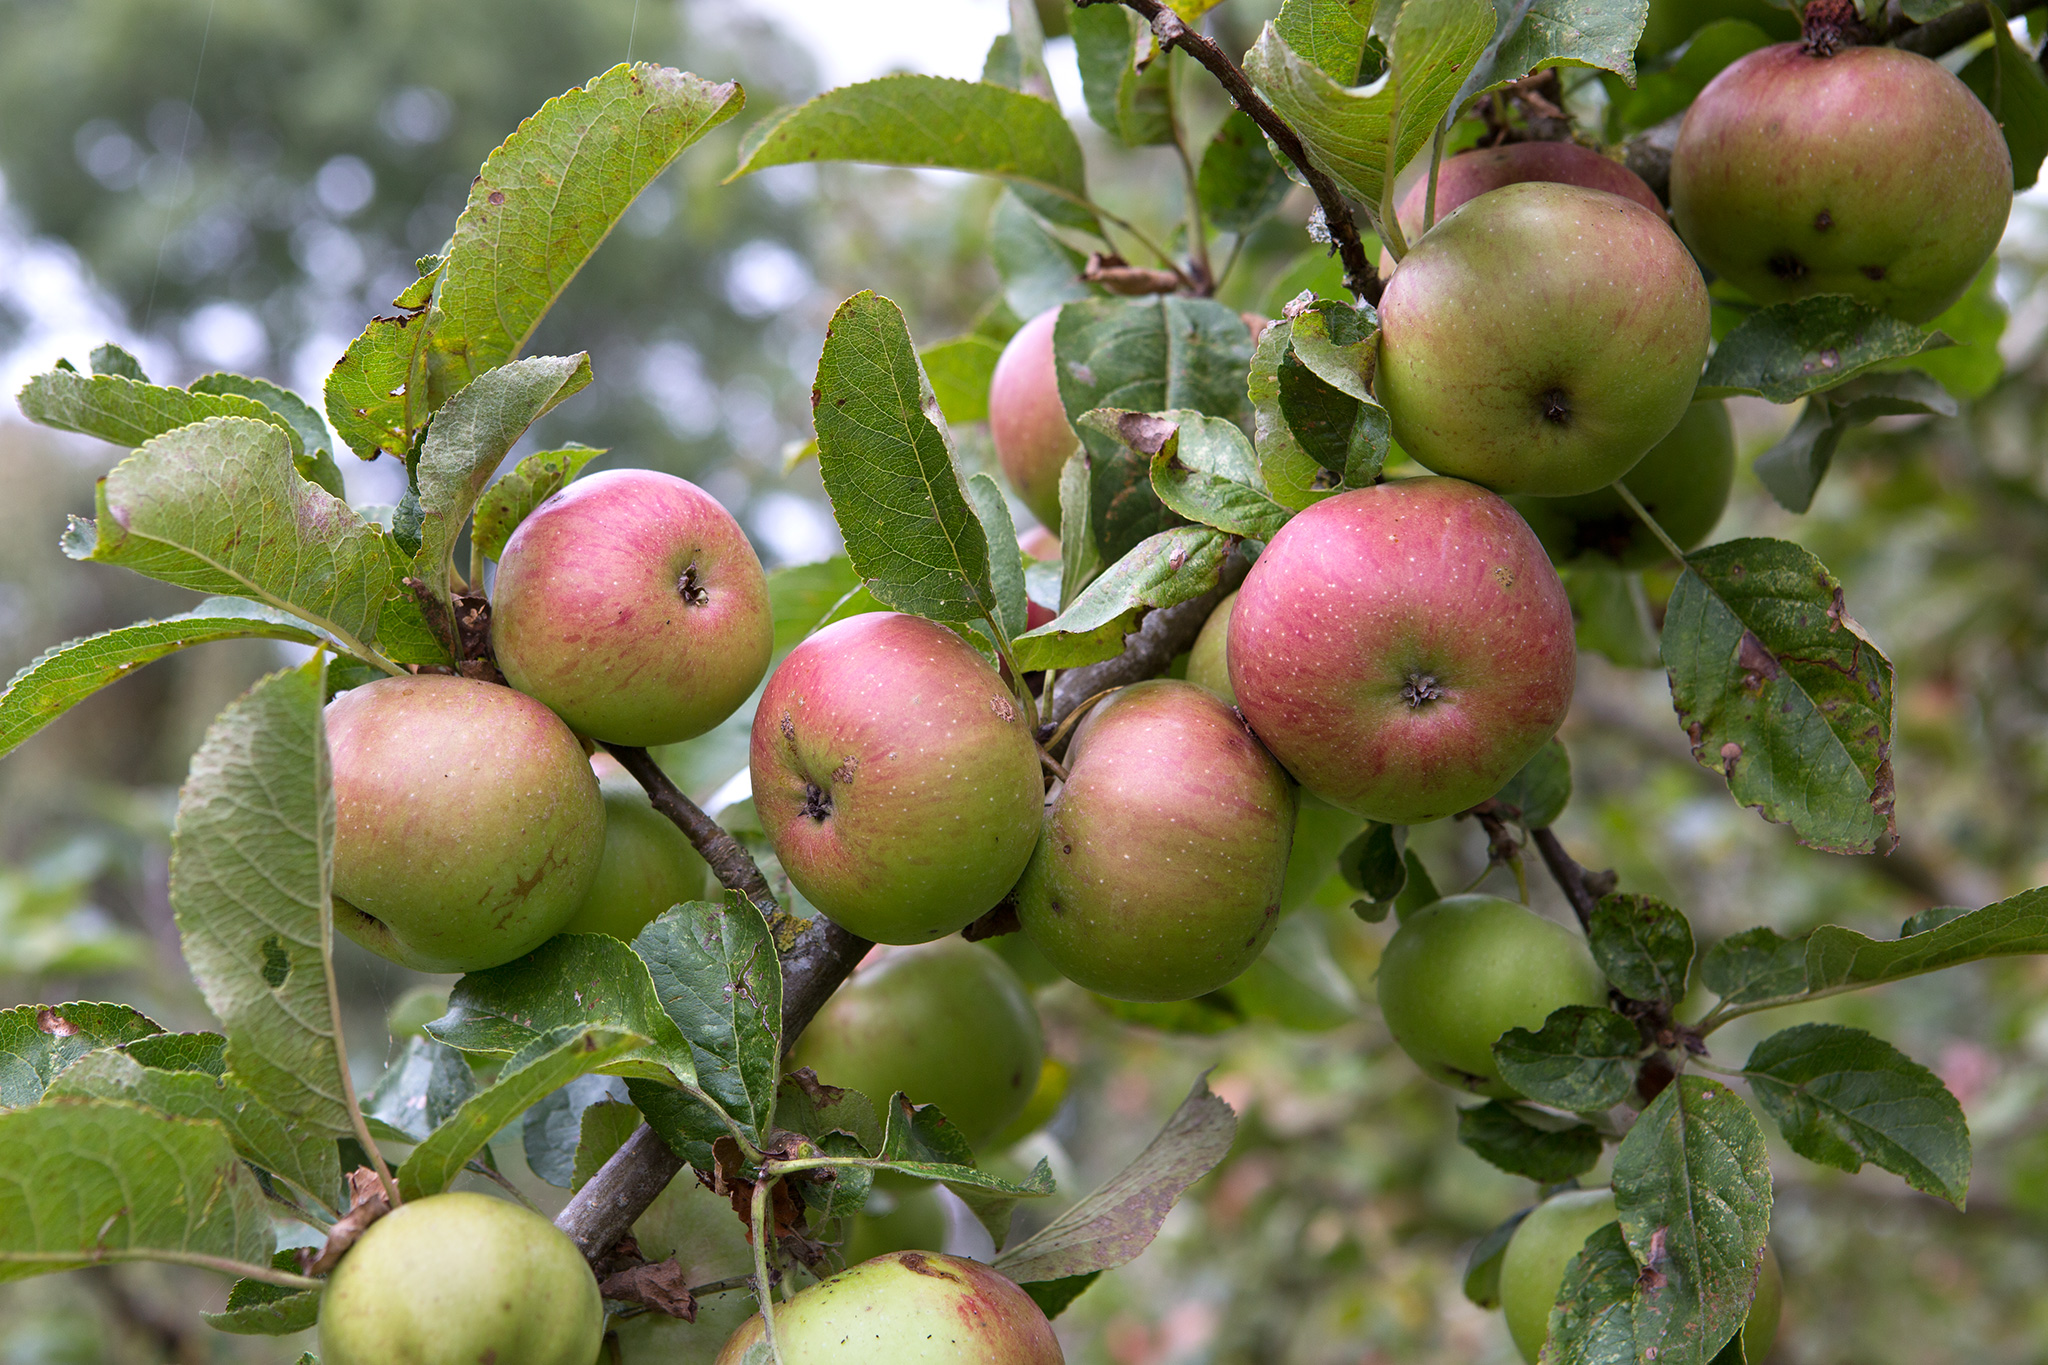 apples-on-tree-2